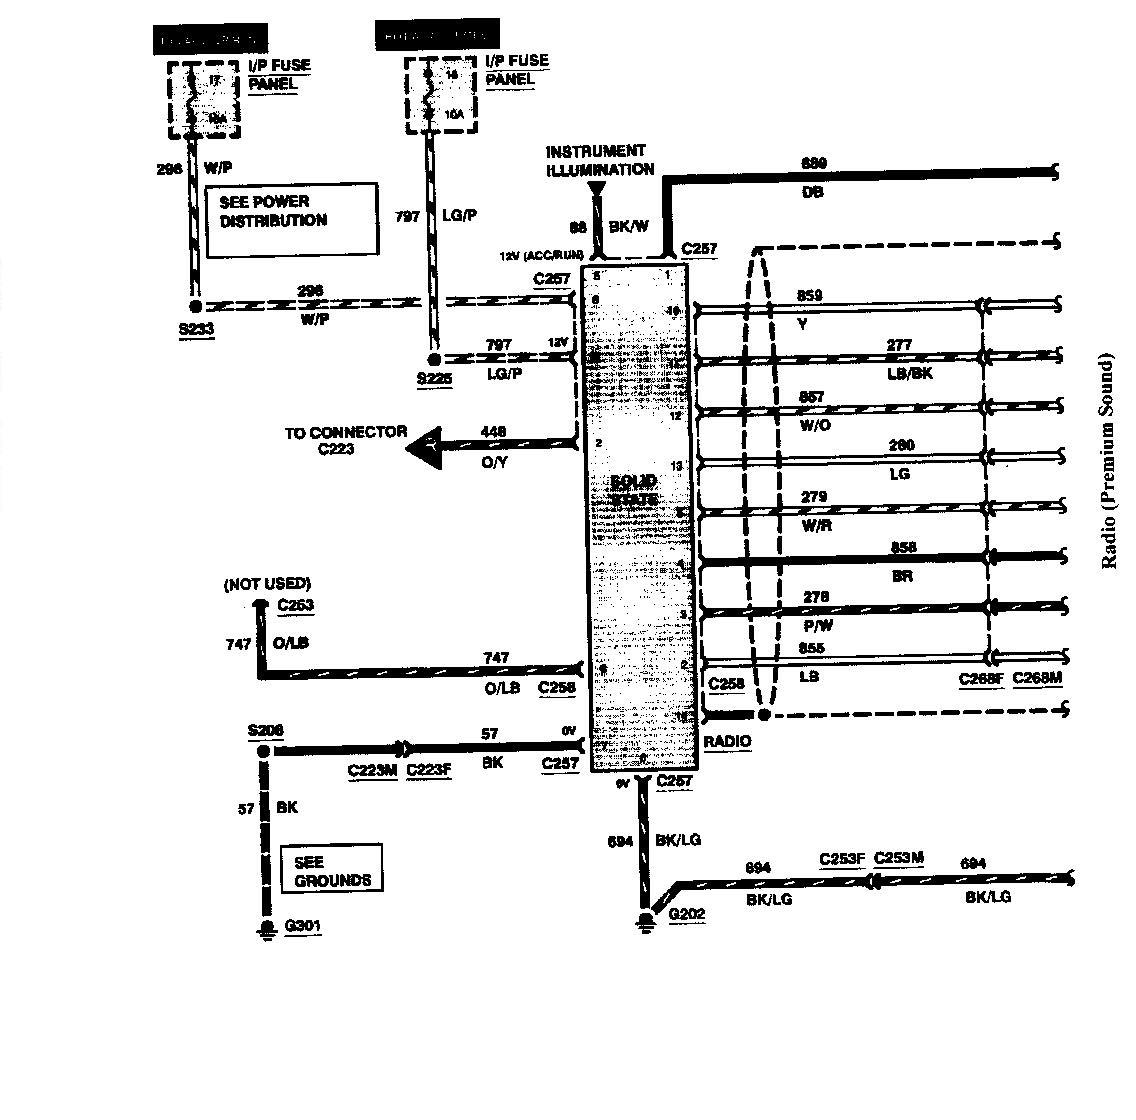 De Marc Wiring Diagram - Wiring Diagram  Way Double Switch Wiring Diagram on 3 way switch getting hot, circuit breaker wiring diagram, volume control wiring diagram, 3 wire switch diagram, 3 way switch help, three way switch diagram, 3 way switch with dimmer, easy 3 way switch diagram, 3 way switch schematic, 3 way switch installation, 3 way light switch, gfci wiring diagram, 3 way switch electrical, three switches one light diagram, four way switch diagram, 3 way switch cover, two way switch diagram, 3 way switch lighting, 3 way switch wire, 3 way switch troubleshooting,